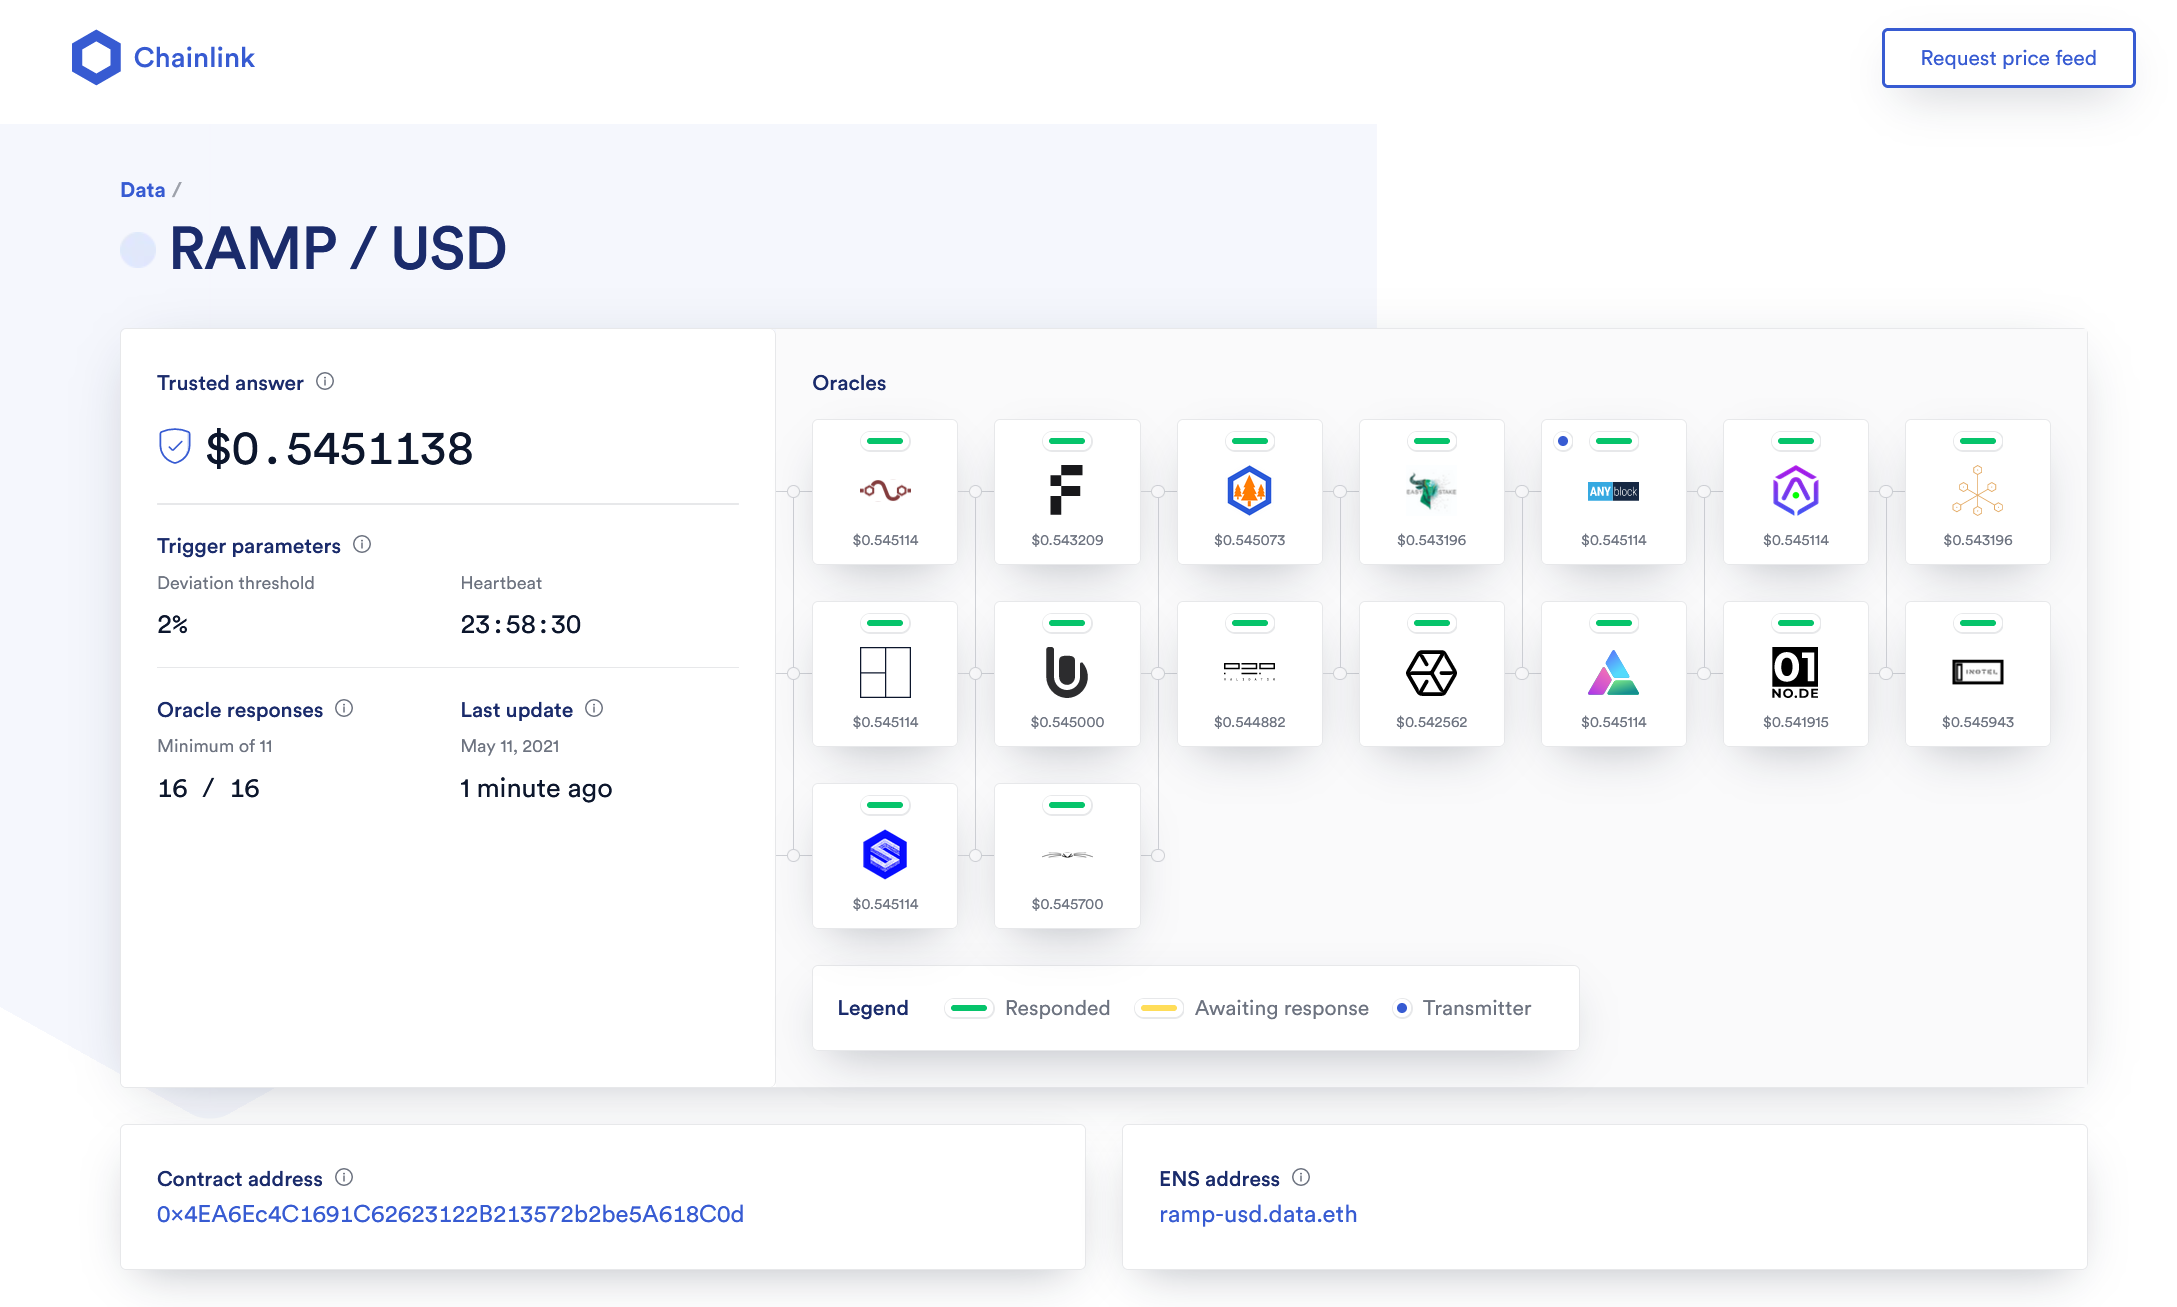 1*RFTYa9qI3WbRPnj5iiVFtw Chainlink Adds RAMP/USD Price Oracle and Secures RAMP's Multi-Chain Staked Liquidity Platform